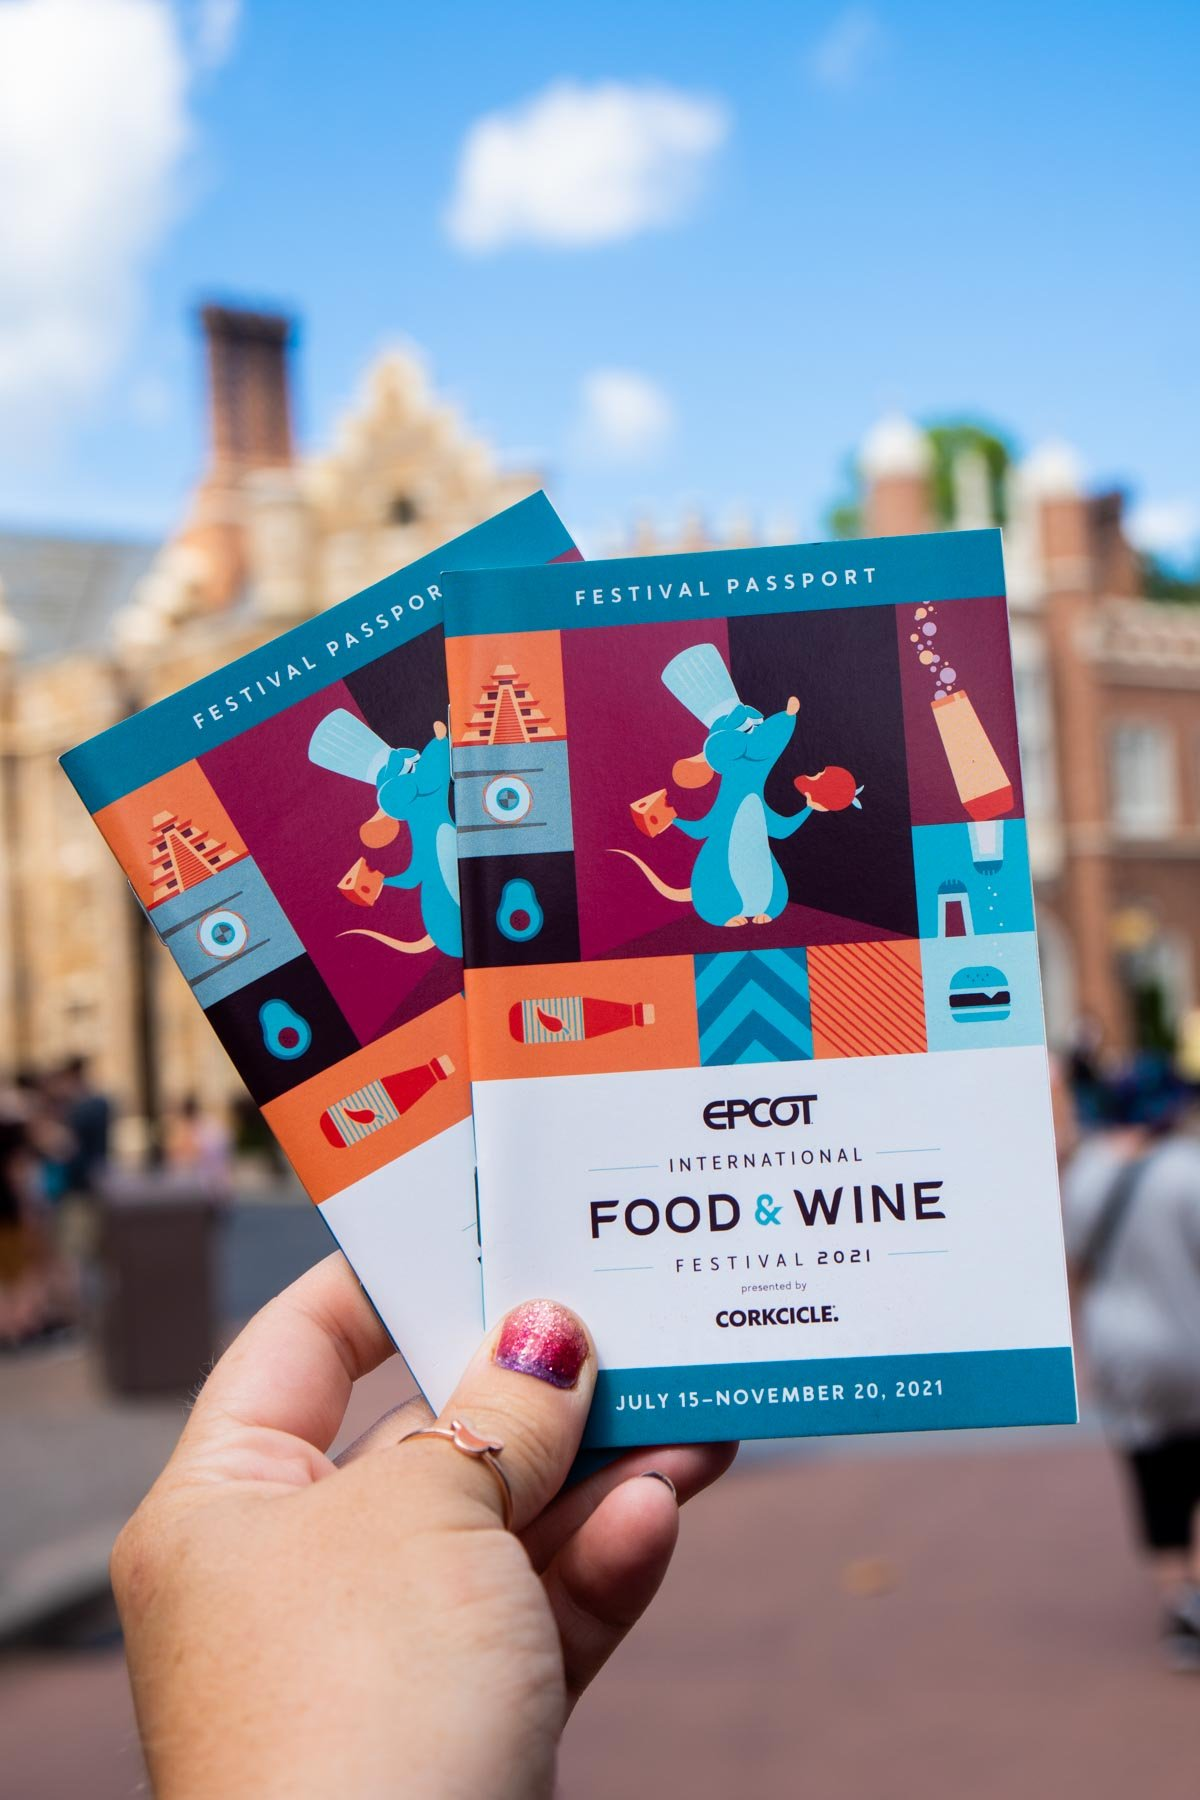 hand holding Epcot food and wine passports